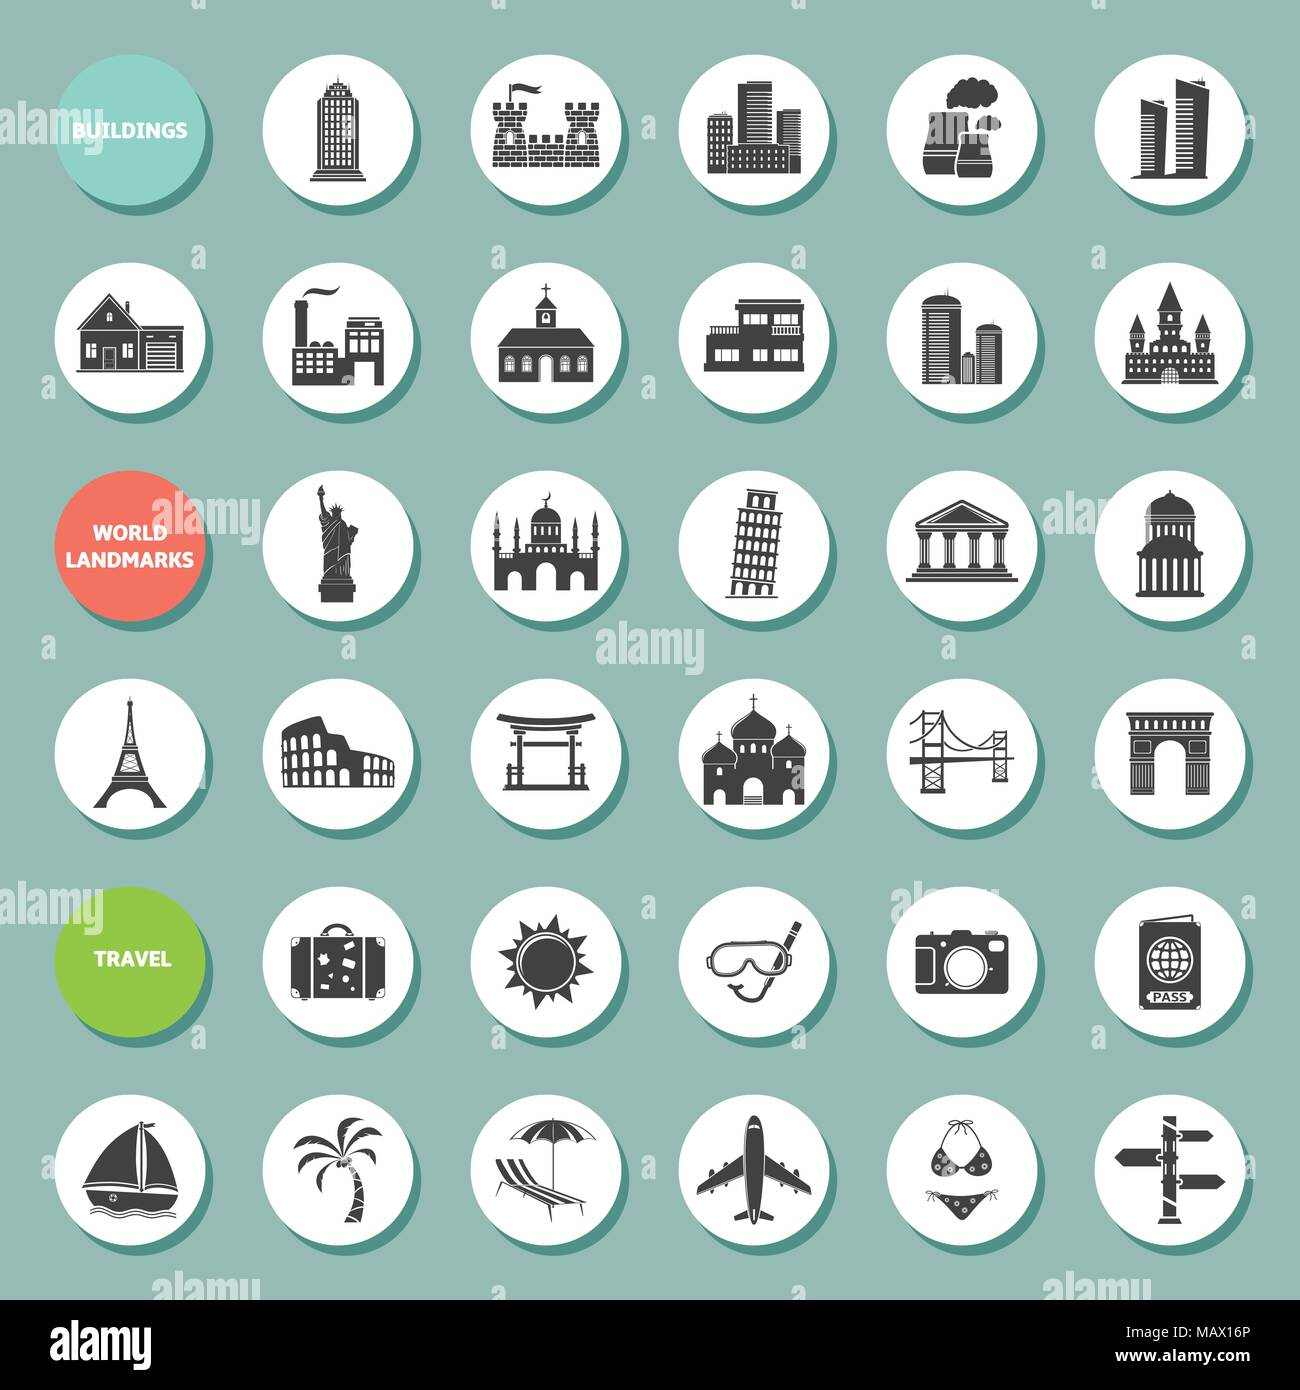 Set of vector web icons for buildings, landmarks and travel. Vector EPS10. Stock Vector